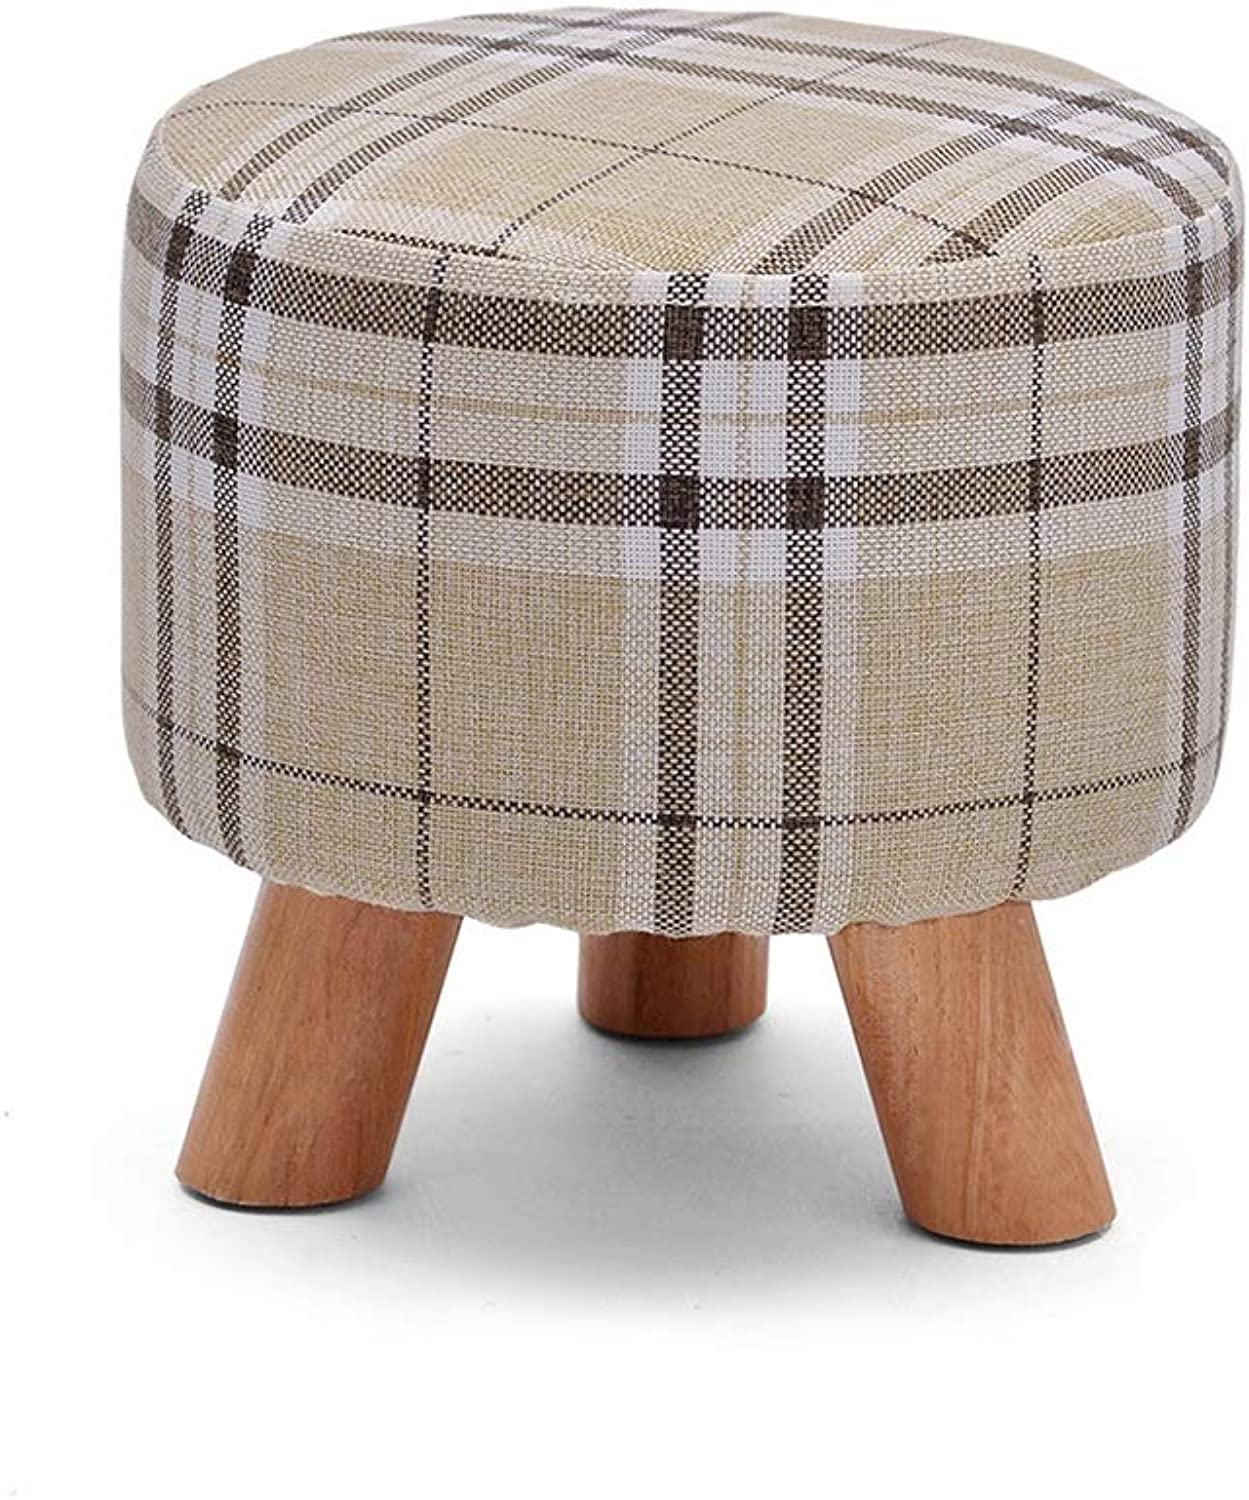 ZZHF dengzi Footstool, Round Padded Wooden Leg Fabric Cotton Sofa Living Room Bedroom Home shoes Bench (color   4, Size   29  28cm)